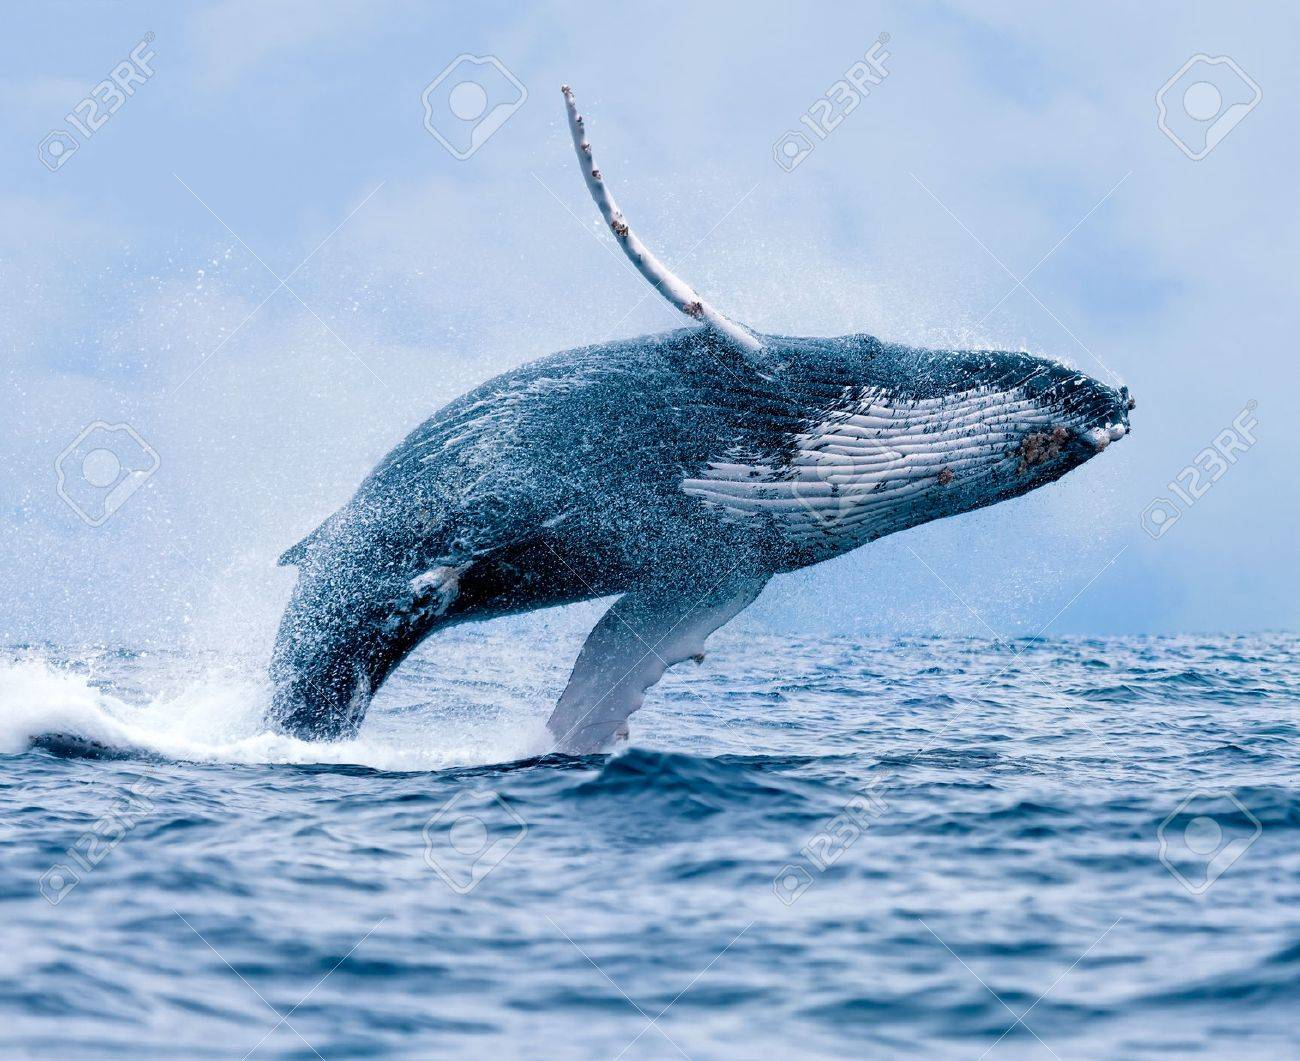 Whale stock photos royalty free whale images a breaching humpback whale stock photo voltagebd Gallery